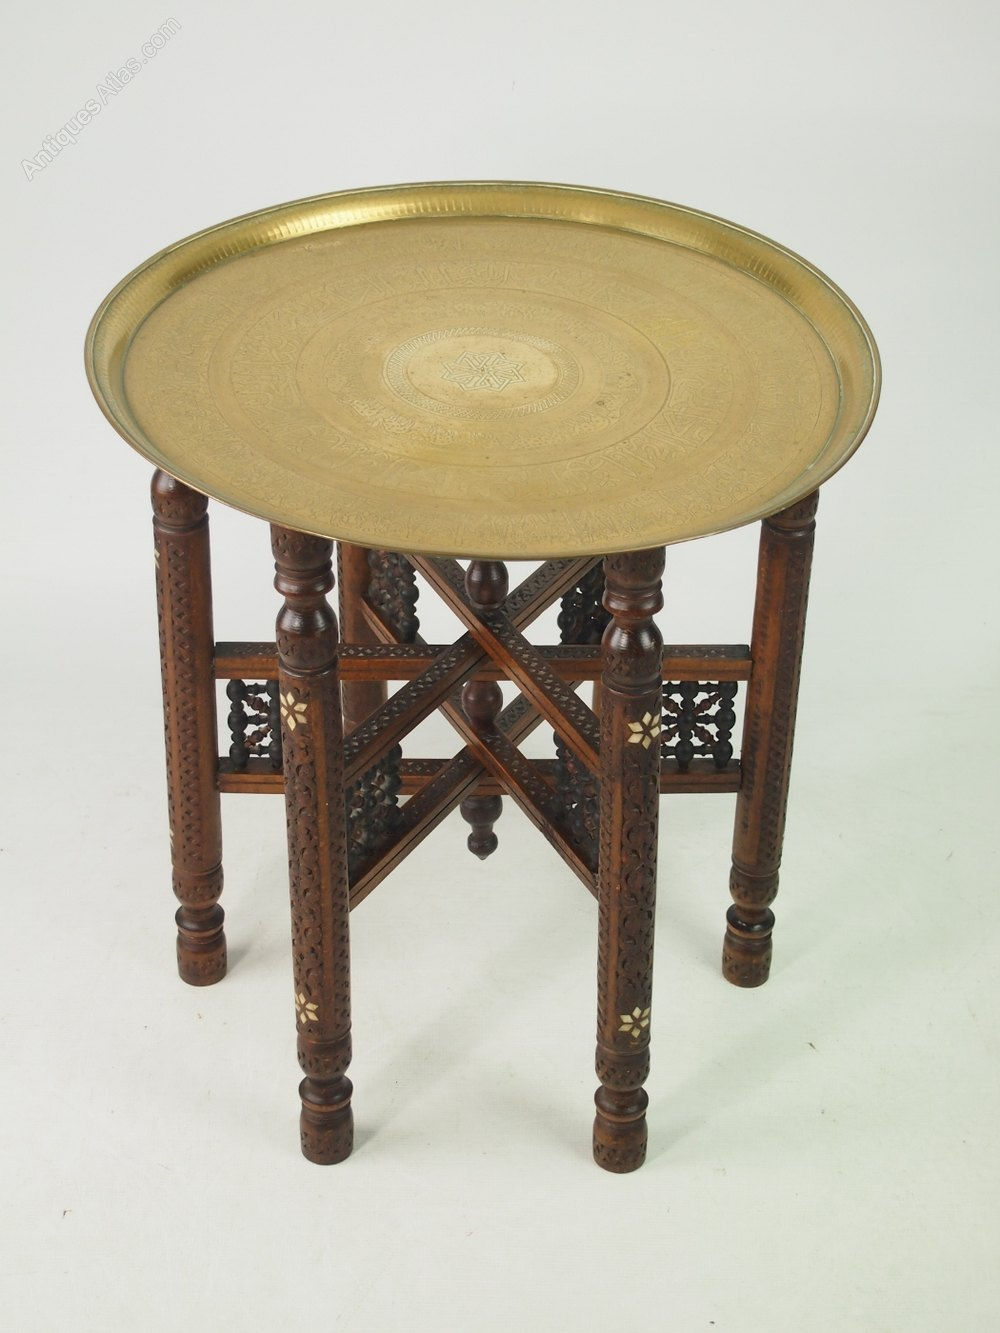 The antique coffee tea table berber benares tray lamp oriental folding - Berber Benares Brass Tray Top Folding Coffee Table Antique